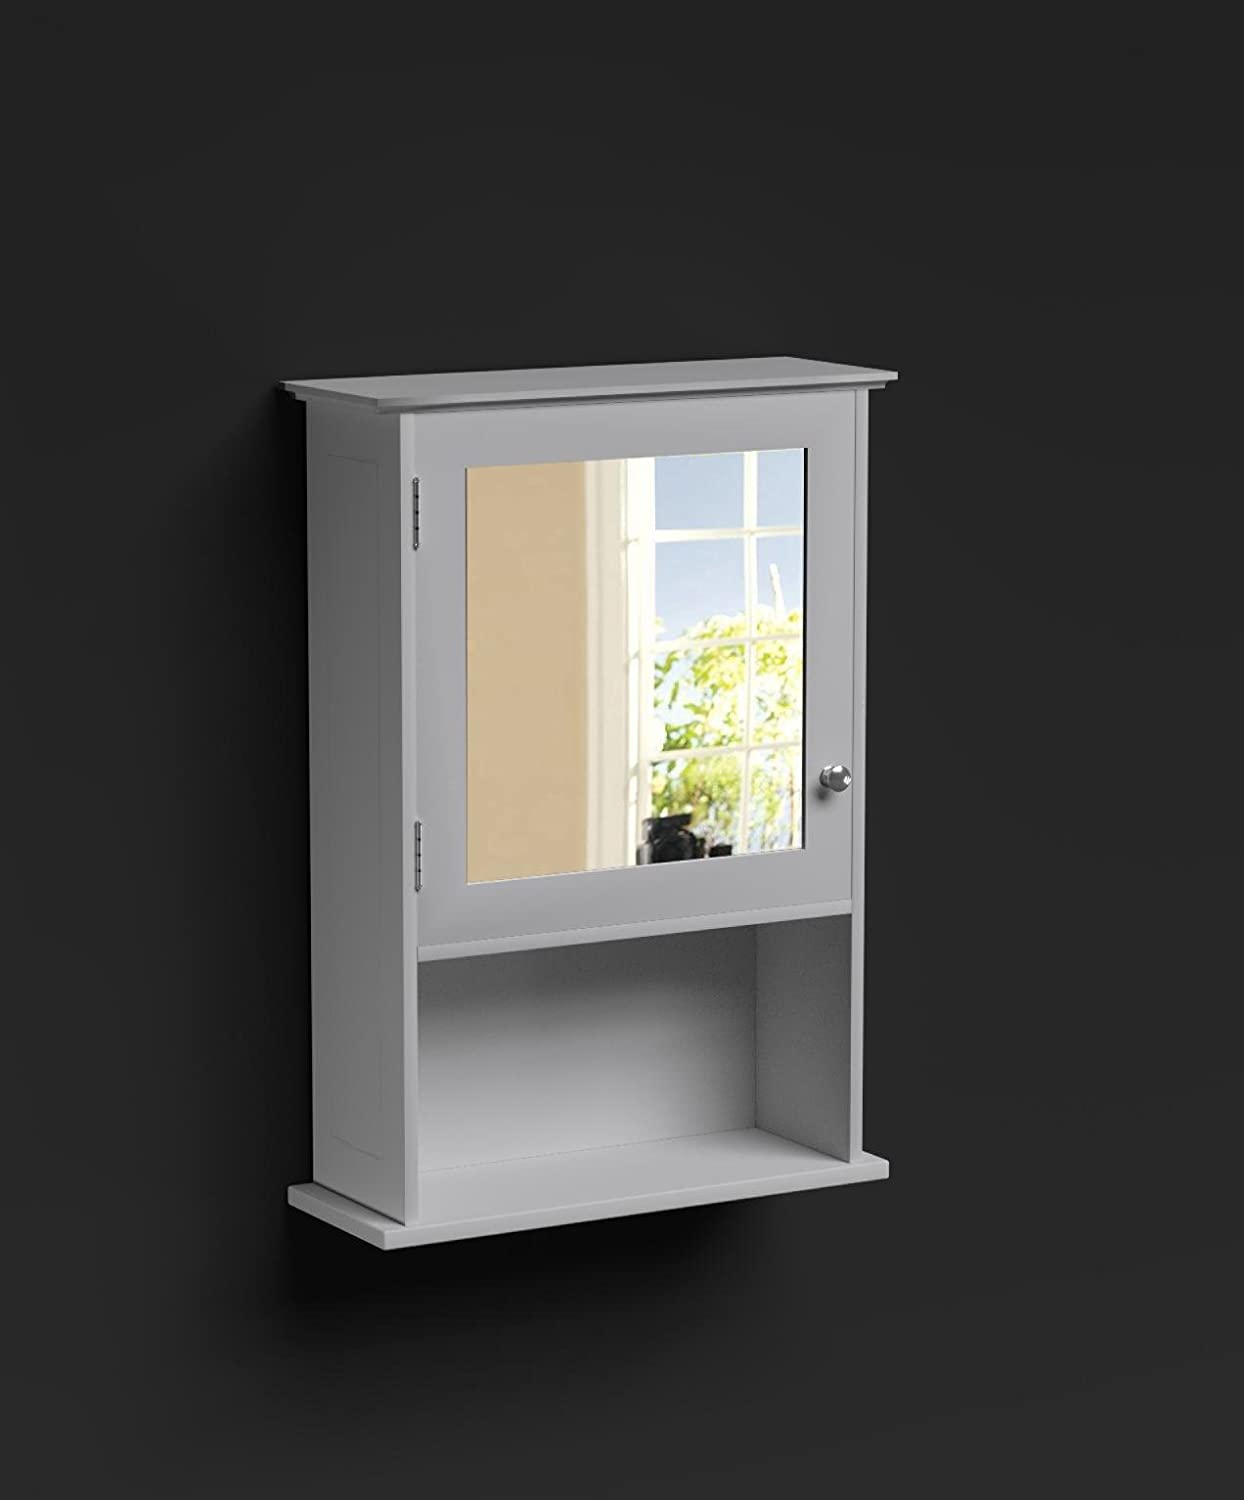 white bathroom mirror with shelf. bathroom mirror cabinet white 1 door storage cupboard over sink colonial tong \u0026 groove: amazon.co.uk: kitchen home with shelf t